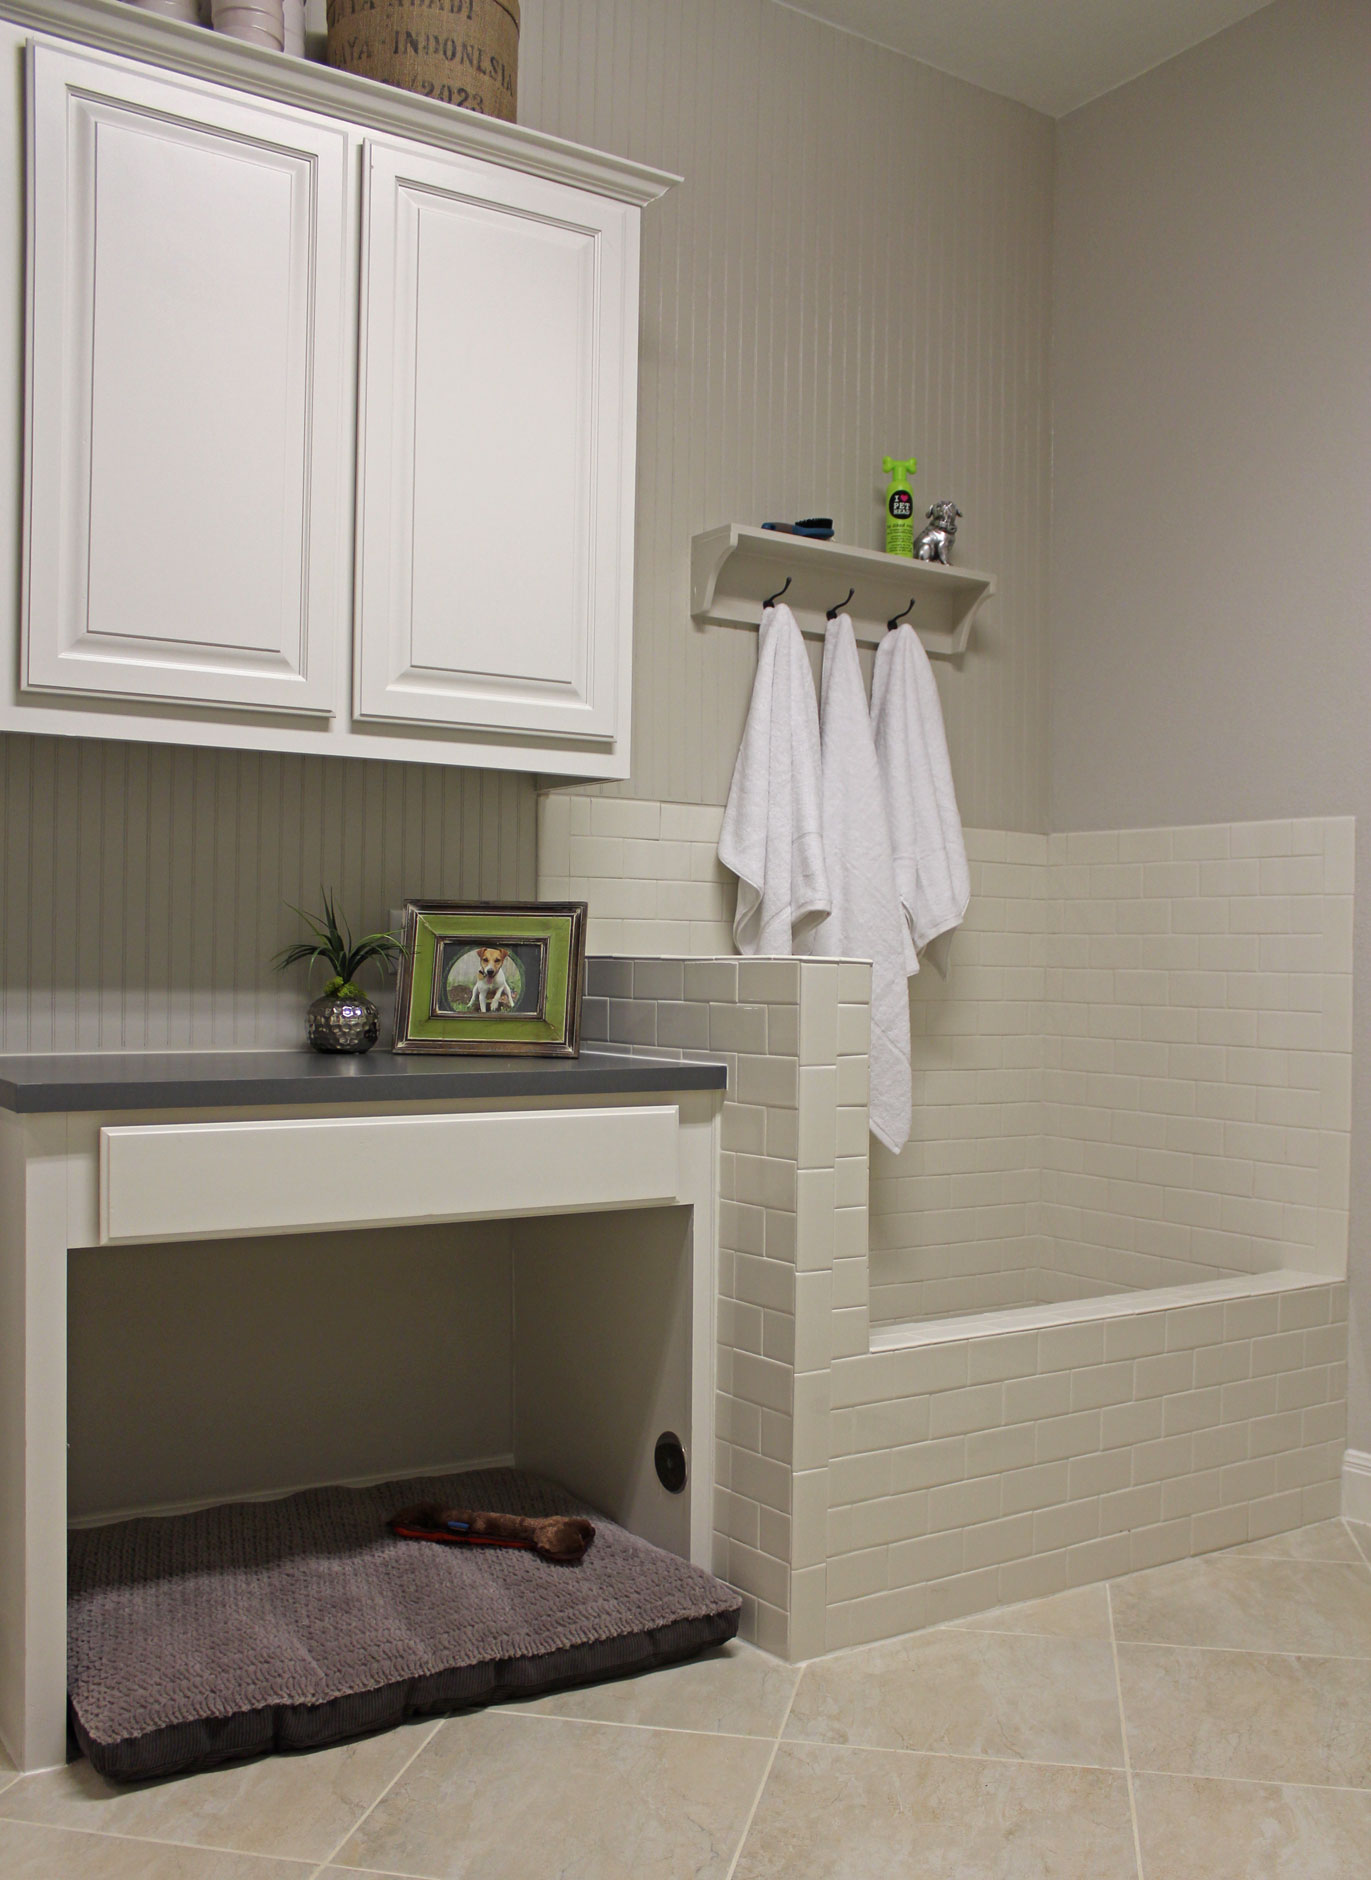 Laundry room with dog shower and space for dog bed